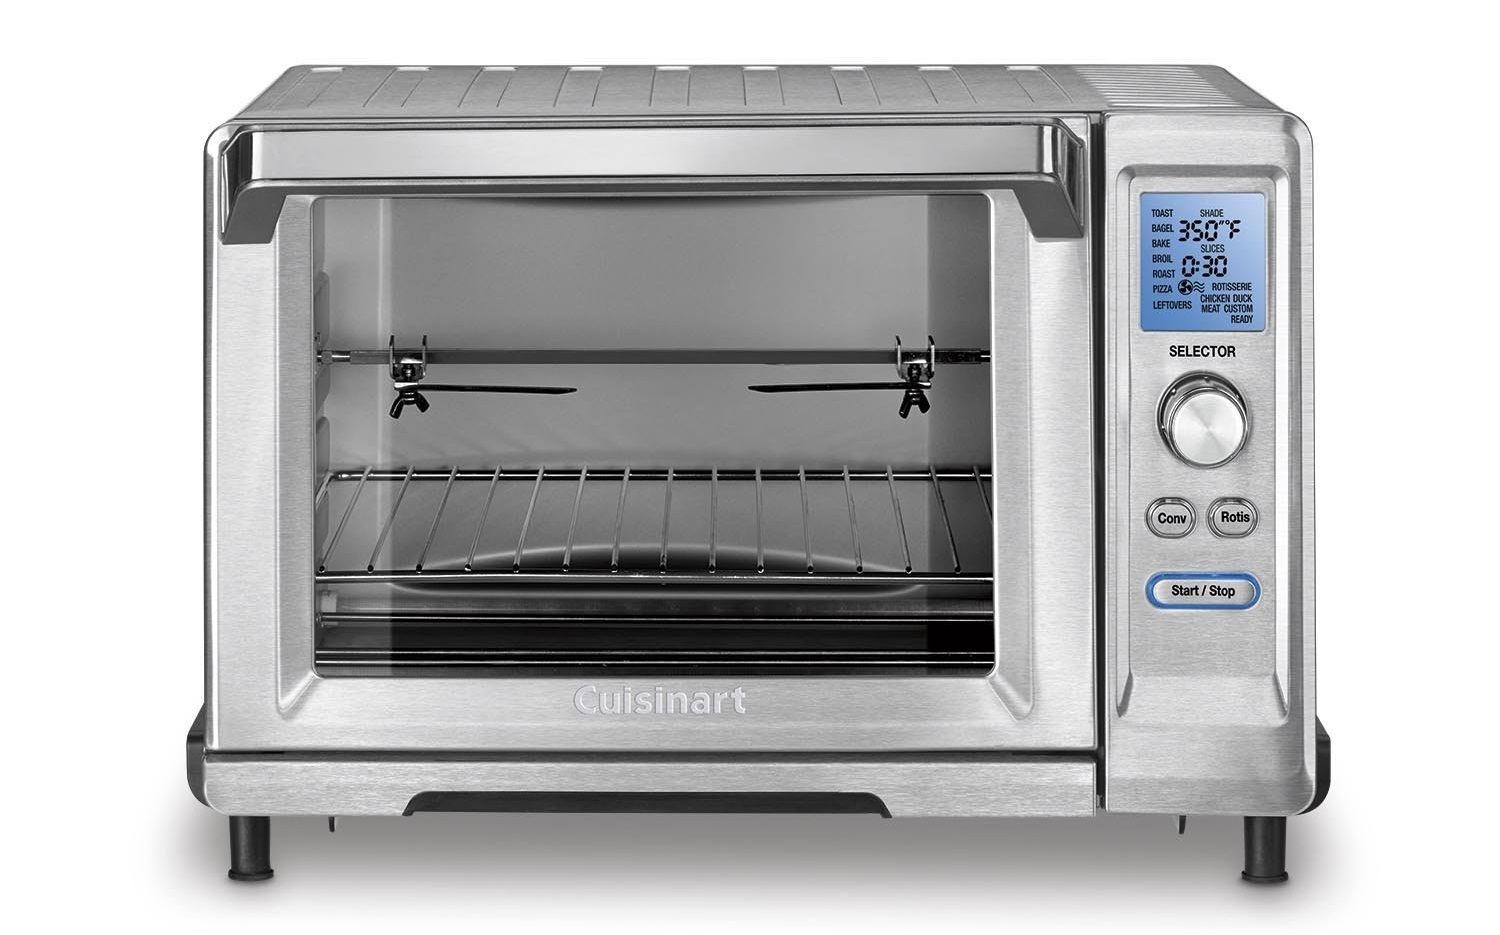 toaster oven you insider best buy largest business ovens can the